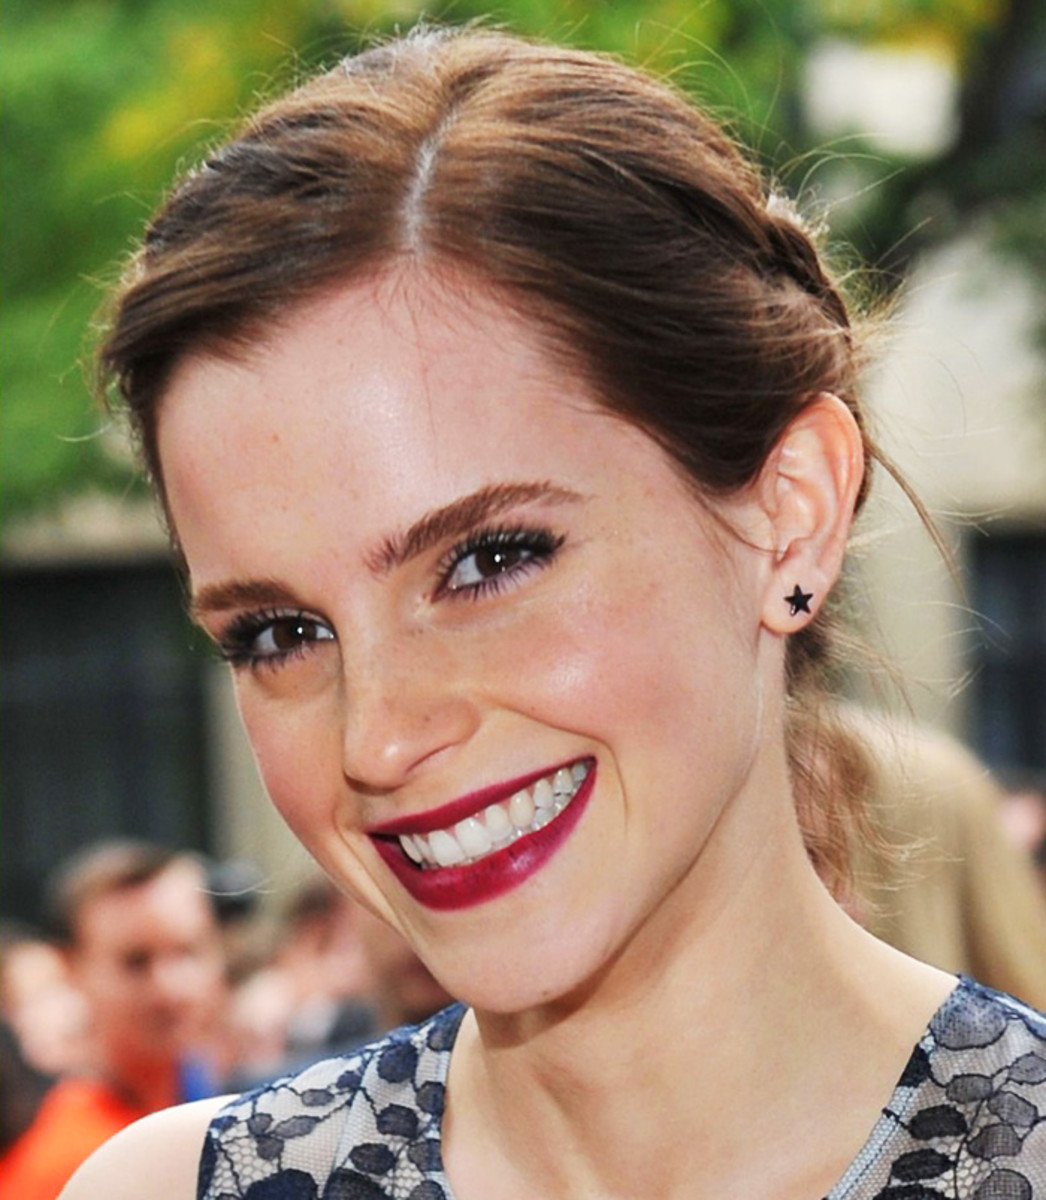 Emma Watson TIFF 2012 Perks of Being a Wallflower red carpet deep berry lips.jpg